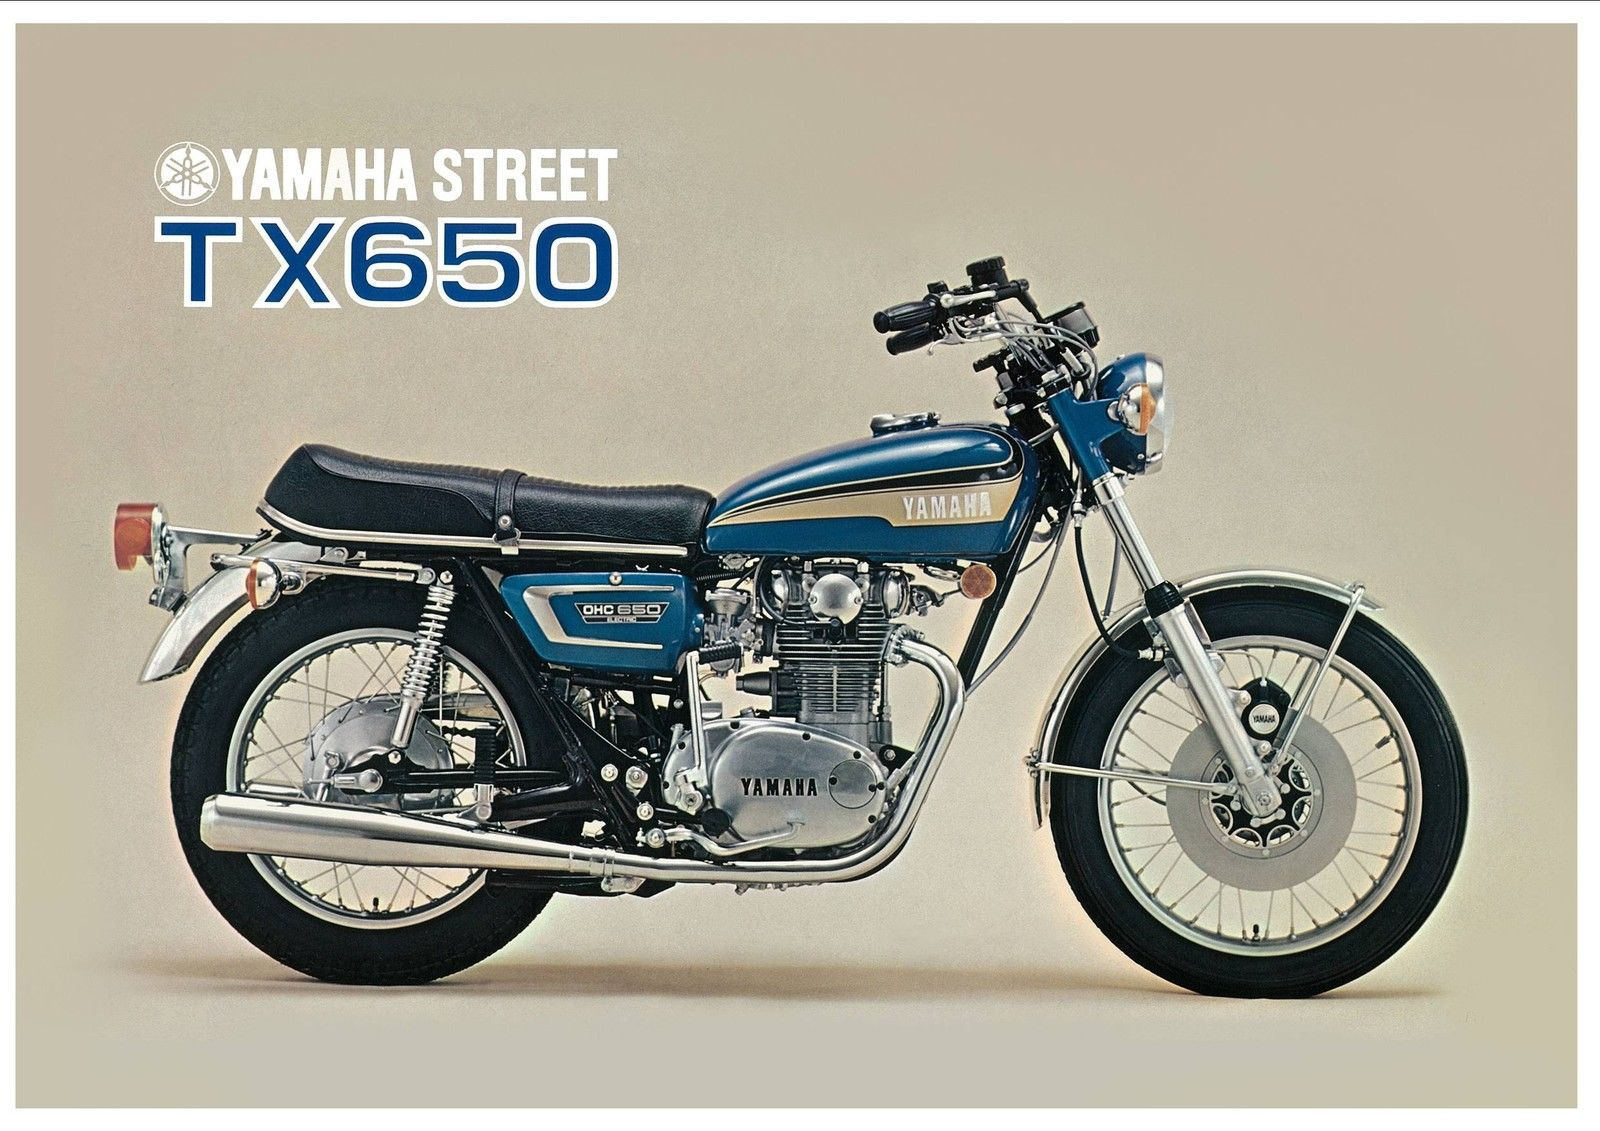 YAMAHA Poster TX650 Street 650 Twin 1973 Superb Suitable to